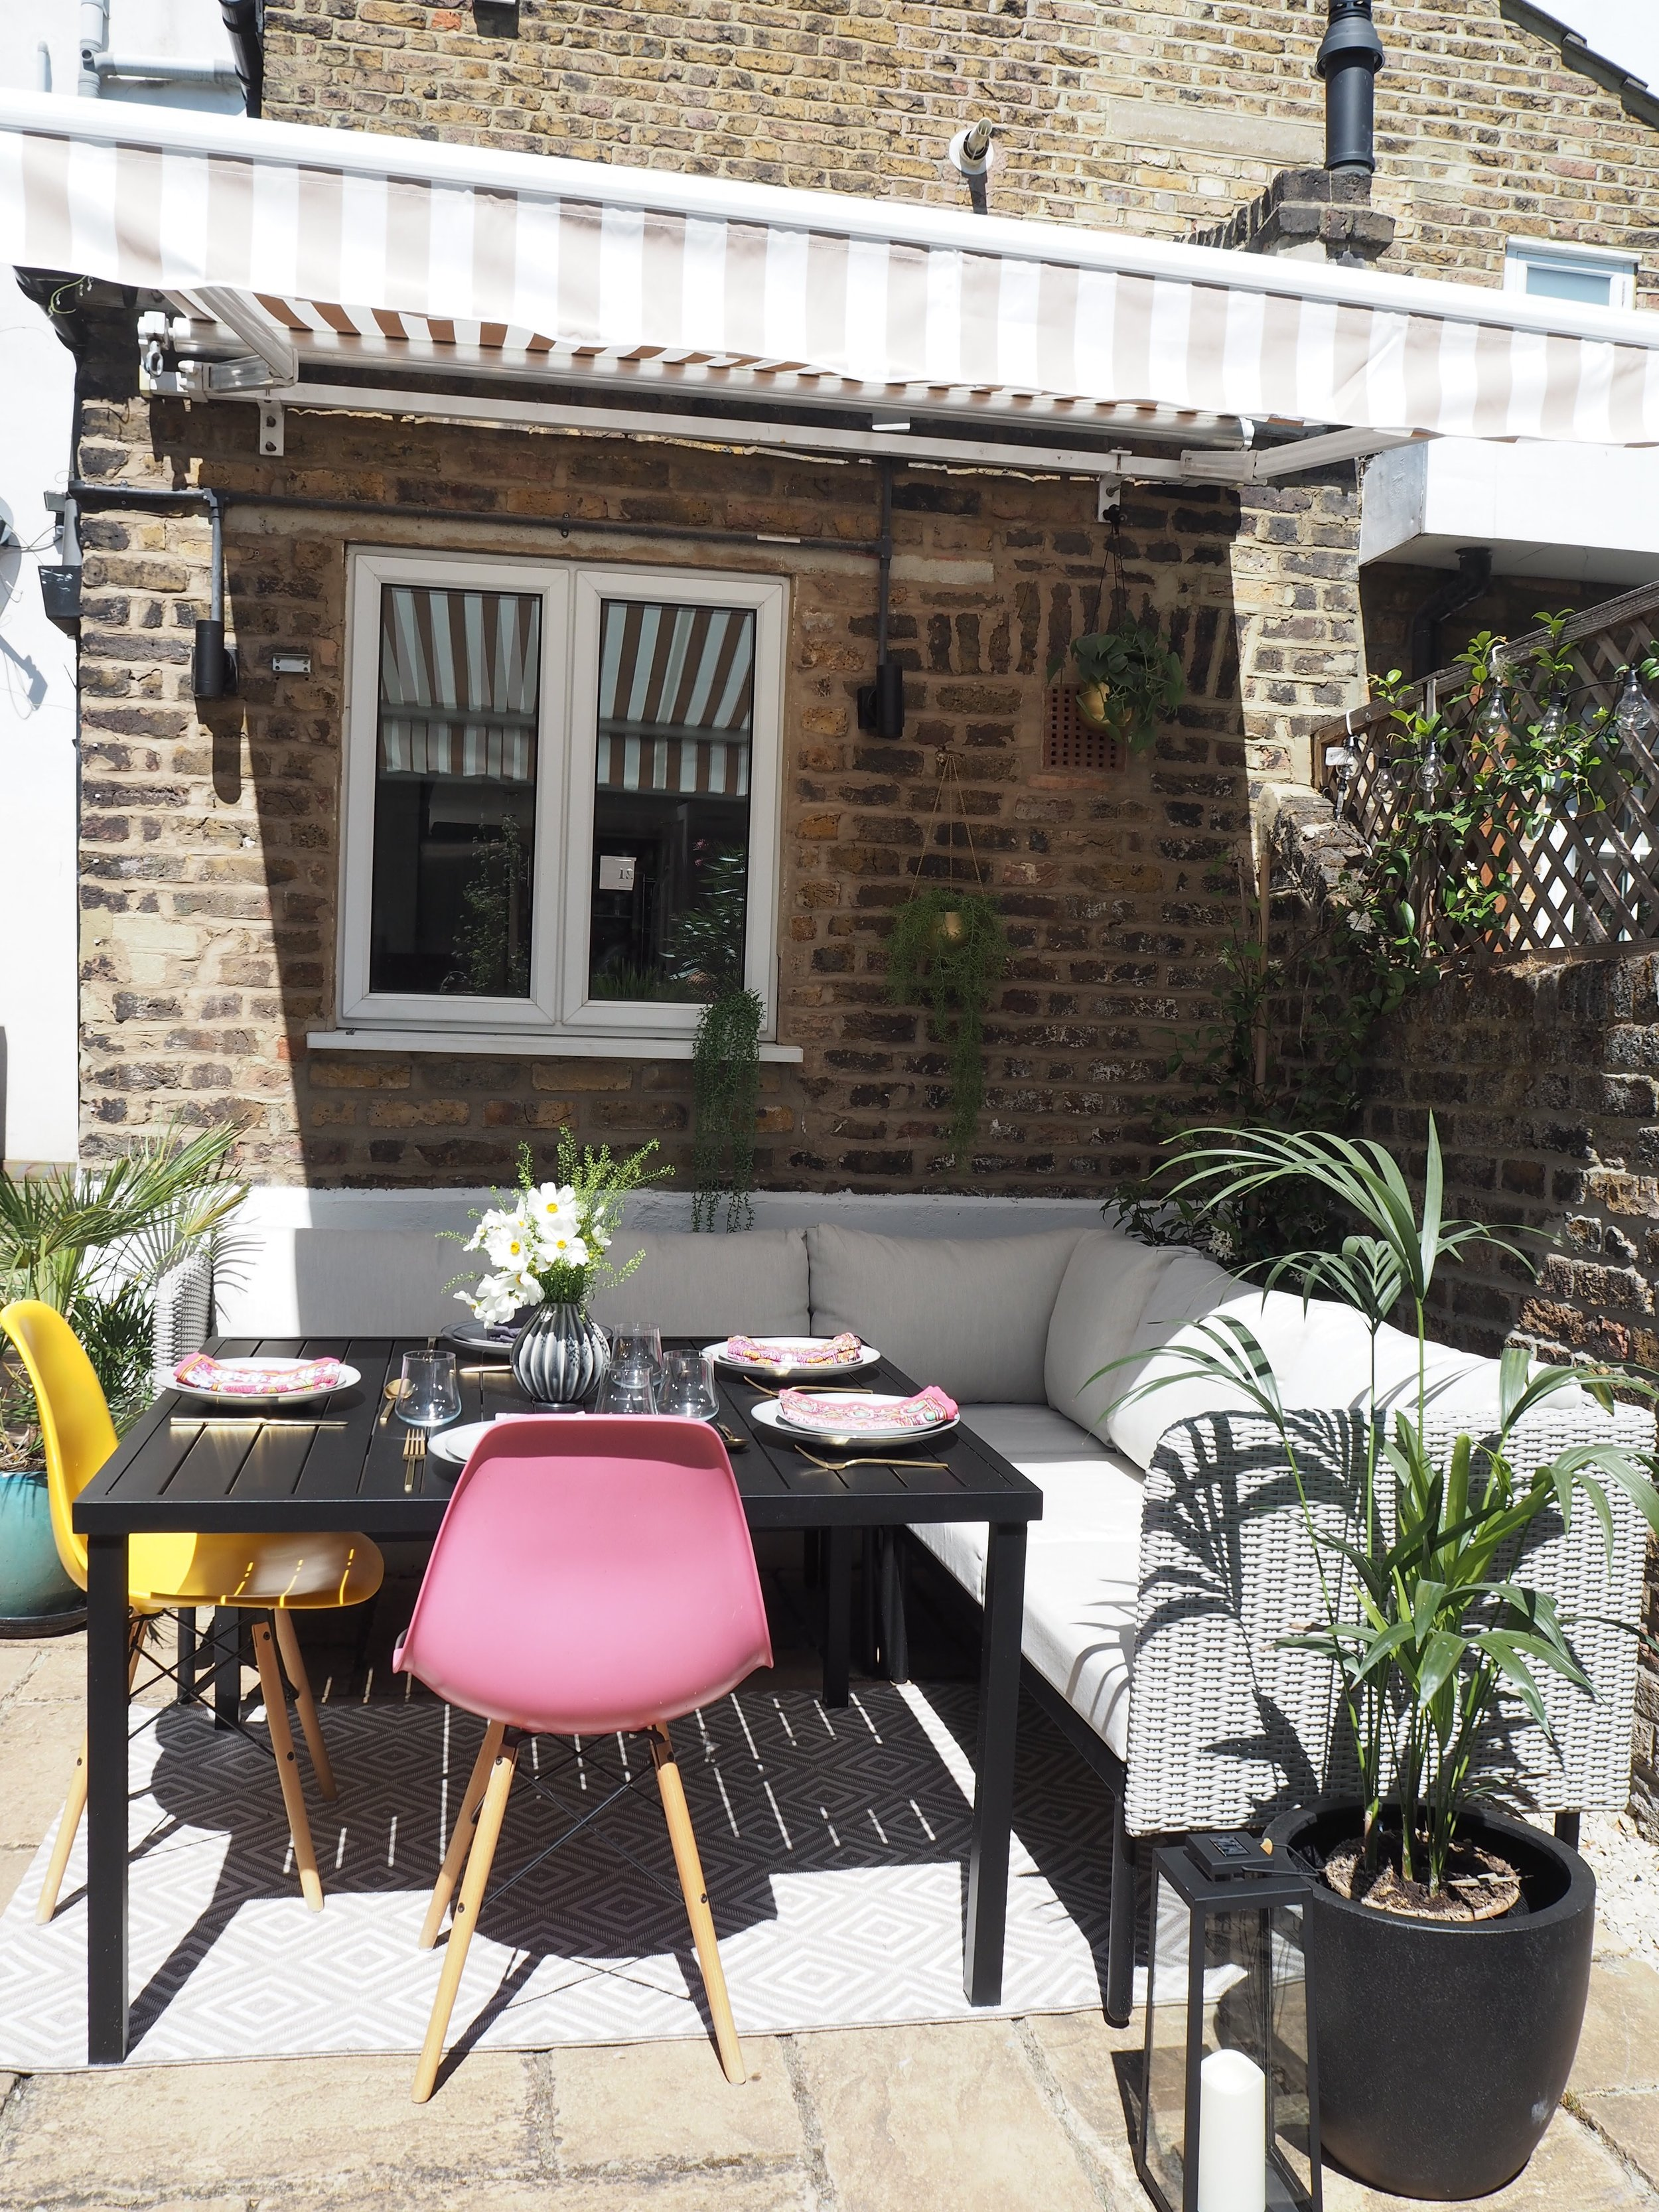 al fresco st tropez hanging chair and cushion antique potty how i transformed our scruffy patio into a gorgeous dining the cushions are suitable for outdoors but m going to buy storage box keep them in on rainy days throughout winter instead of buying new